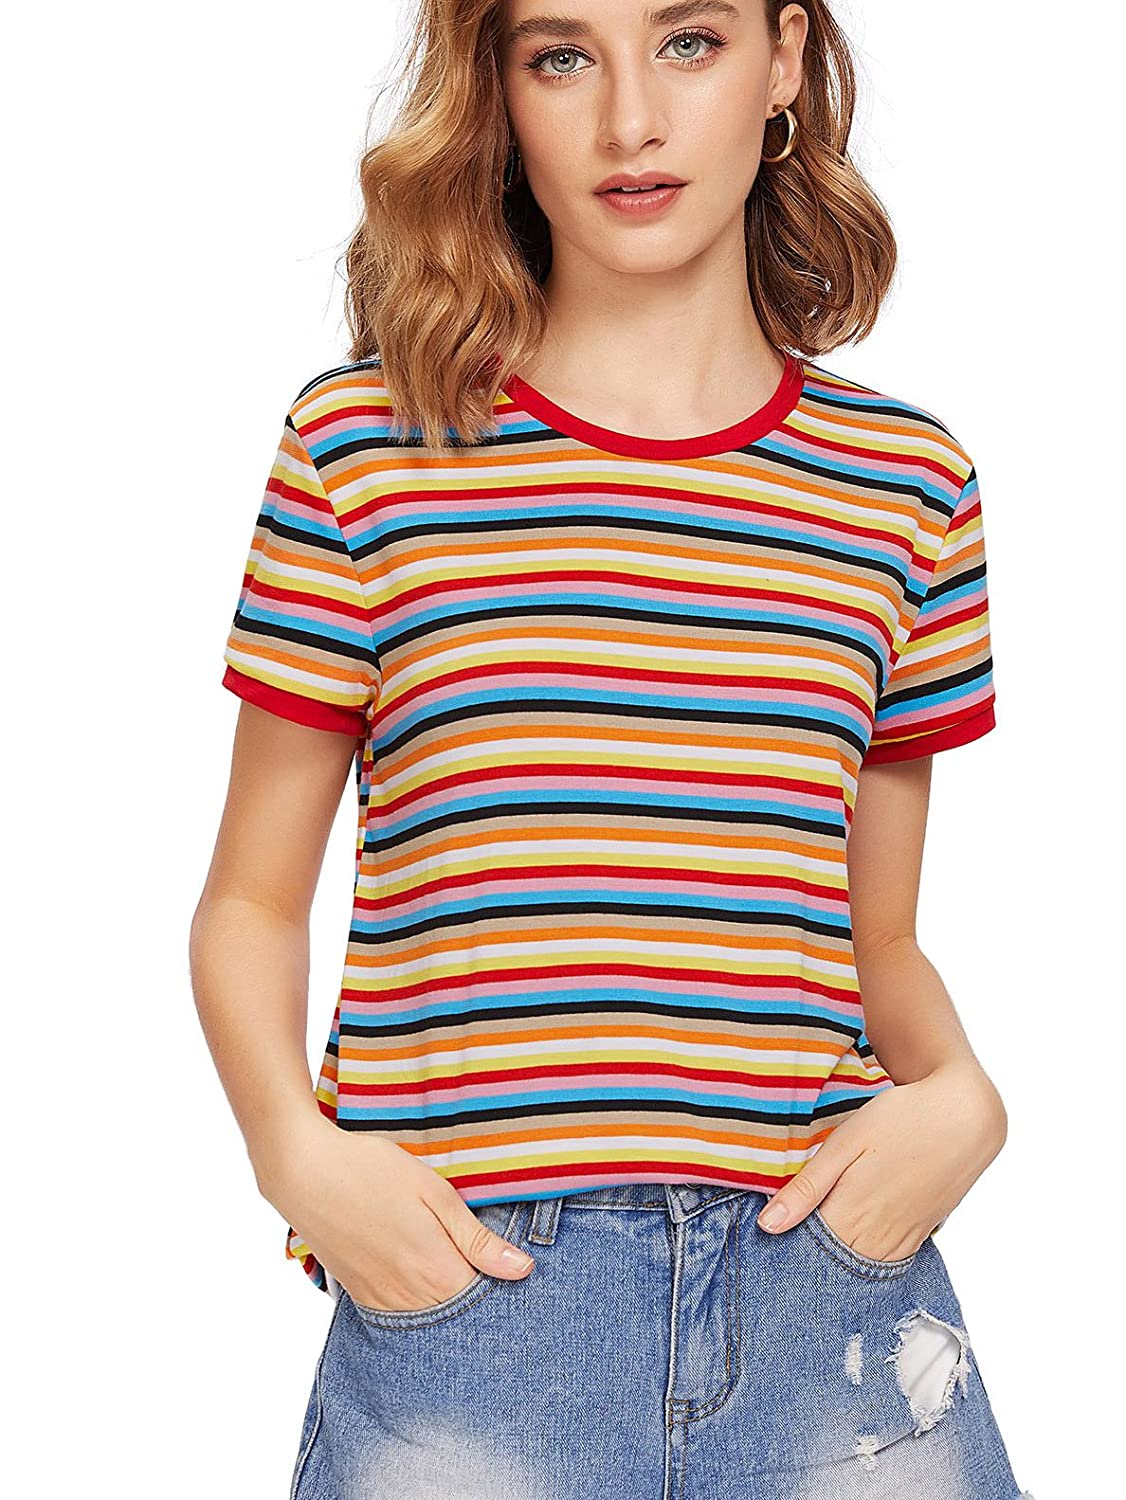 64b993cac1 SheIn Women's Round Neck Short Sleeve Colorful Striped Crop Top at Amazon  Women's Clothing store: